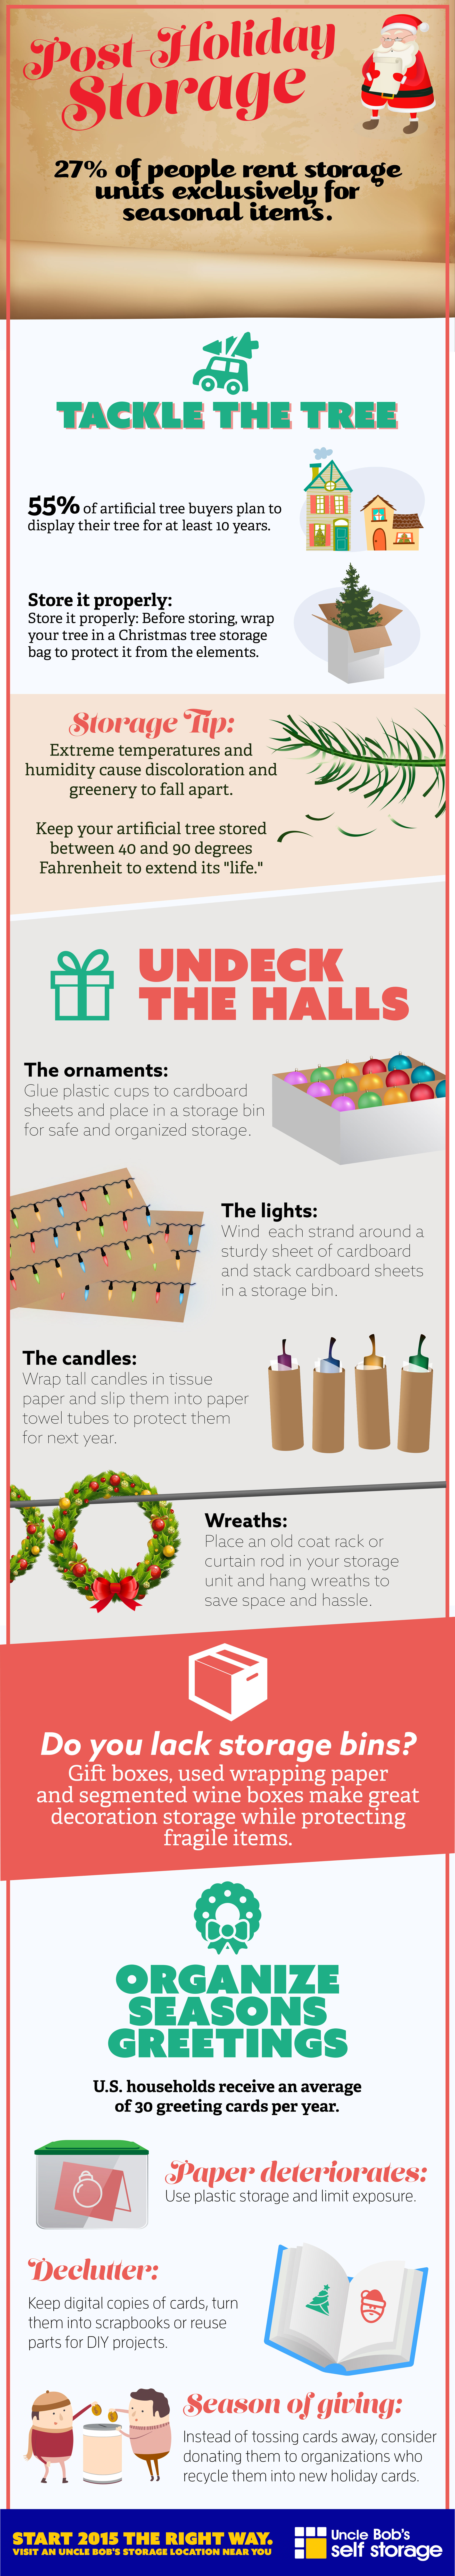 Post-holiday storage infographic